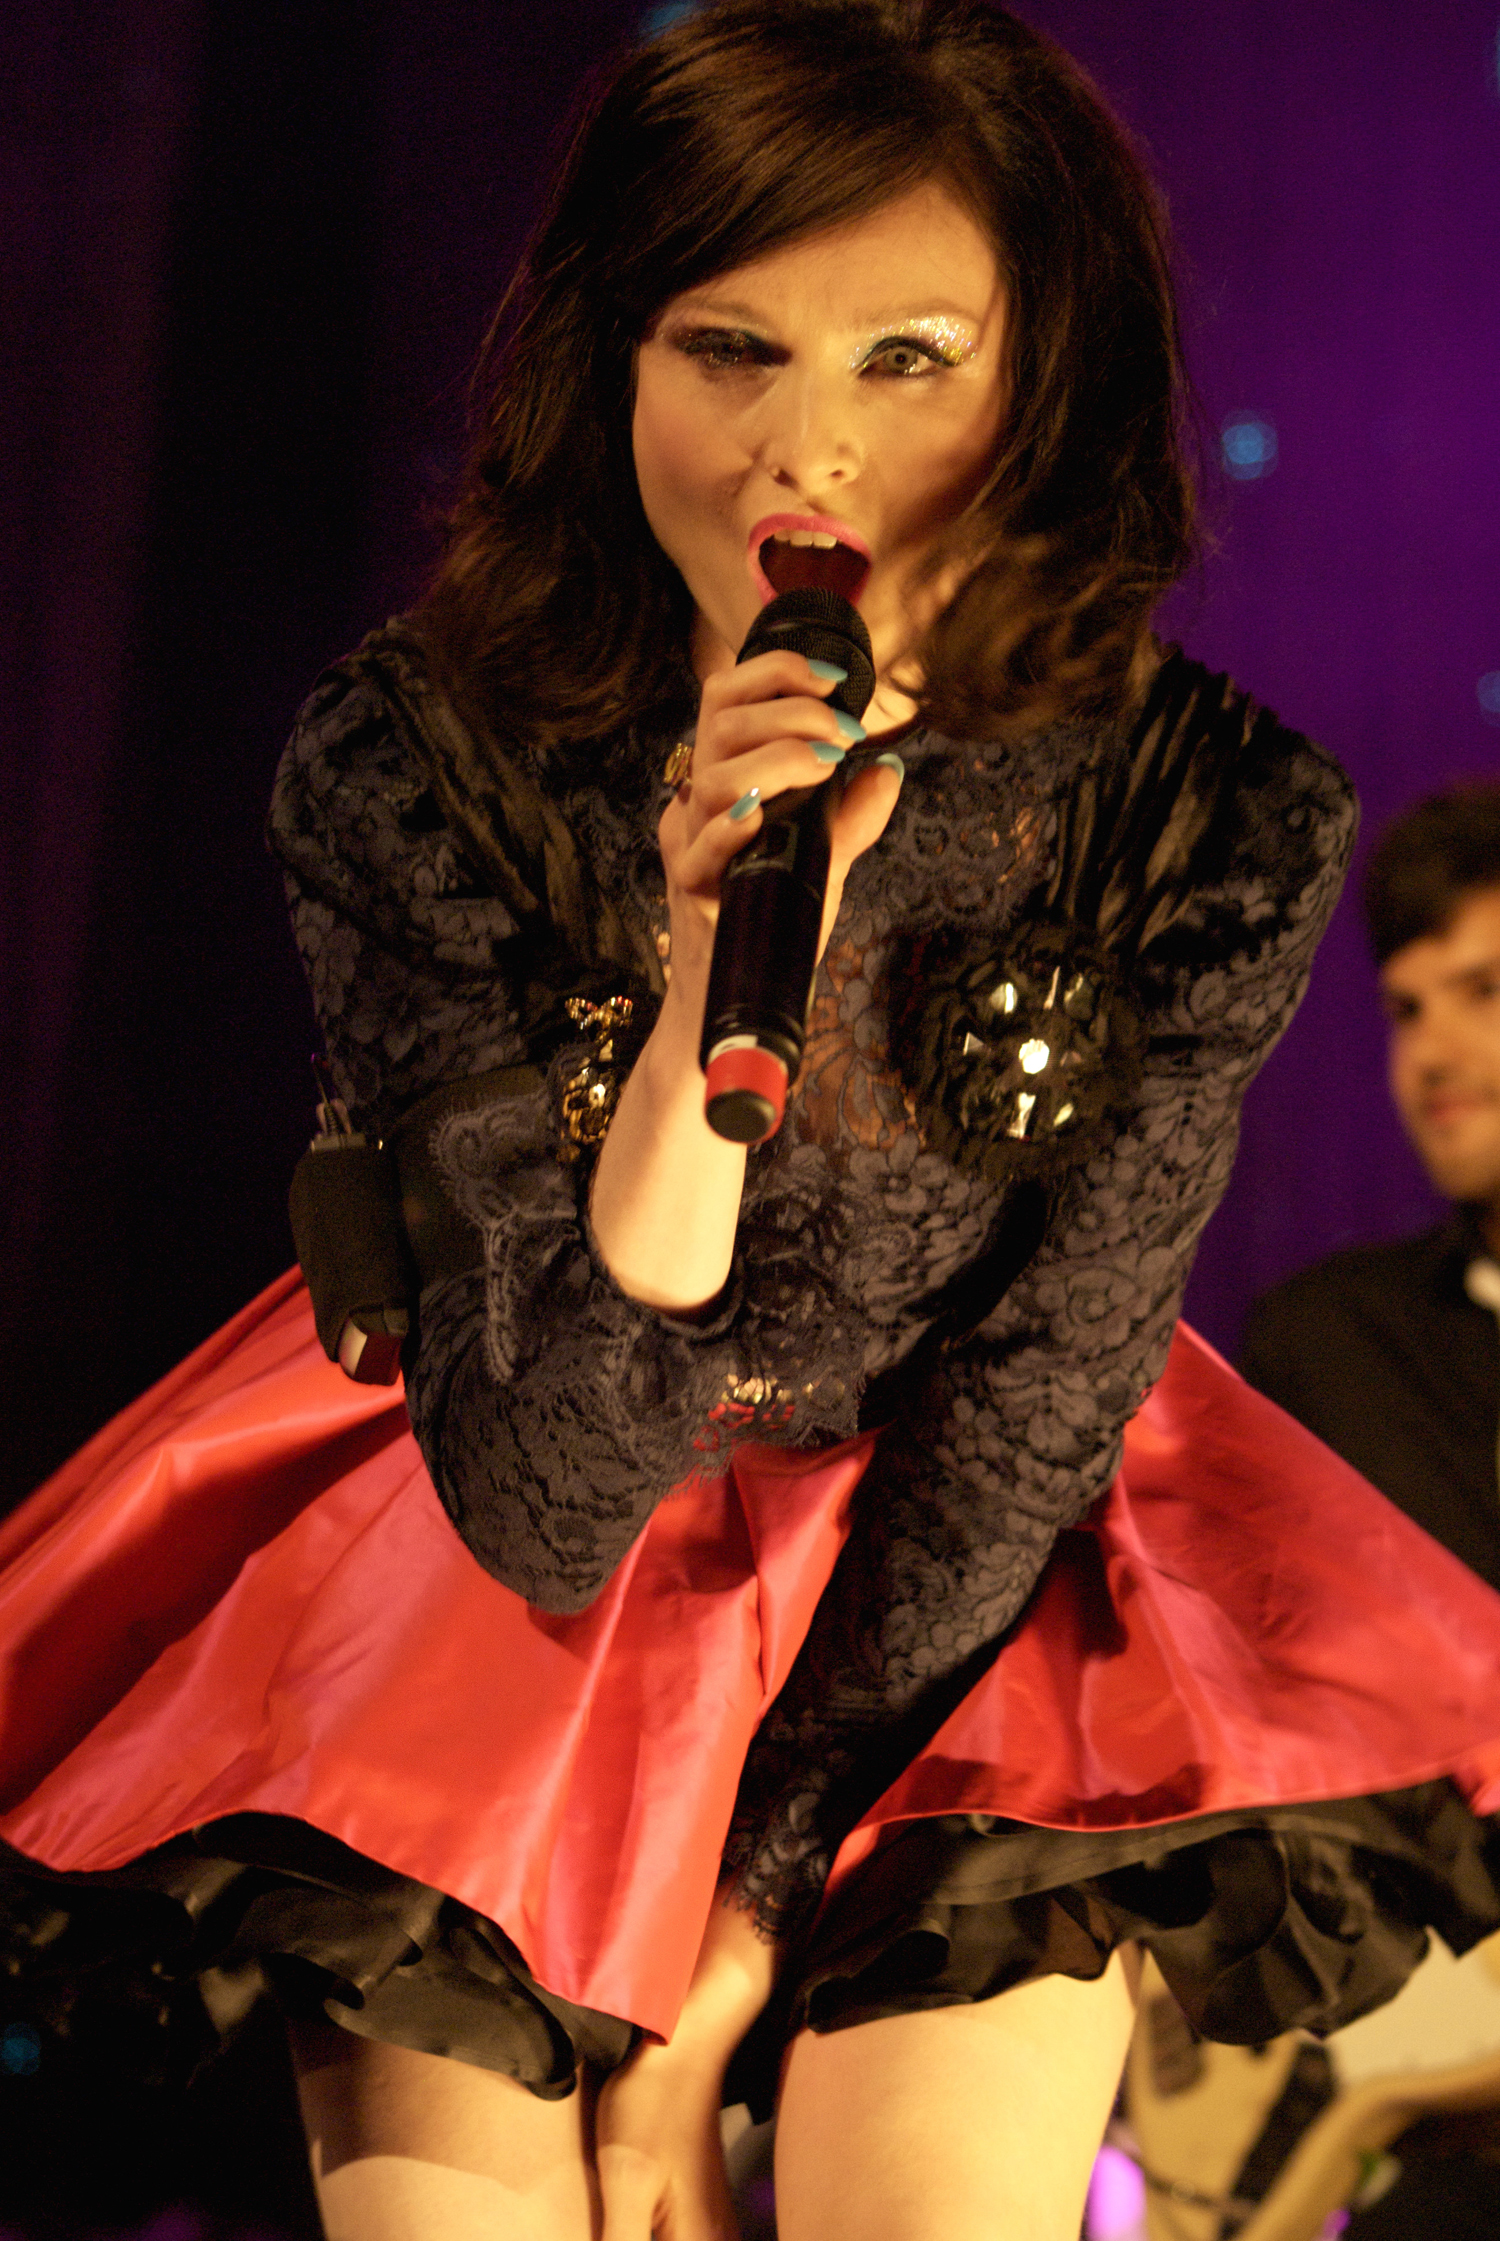 events-sophie-ellis-bextor-photo.jpg